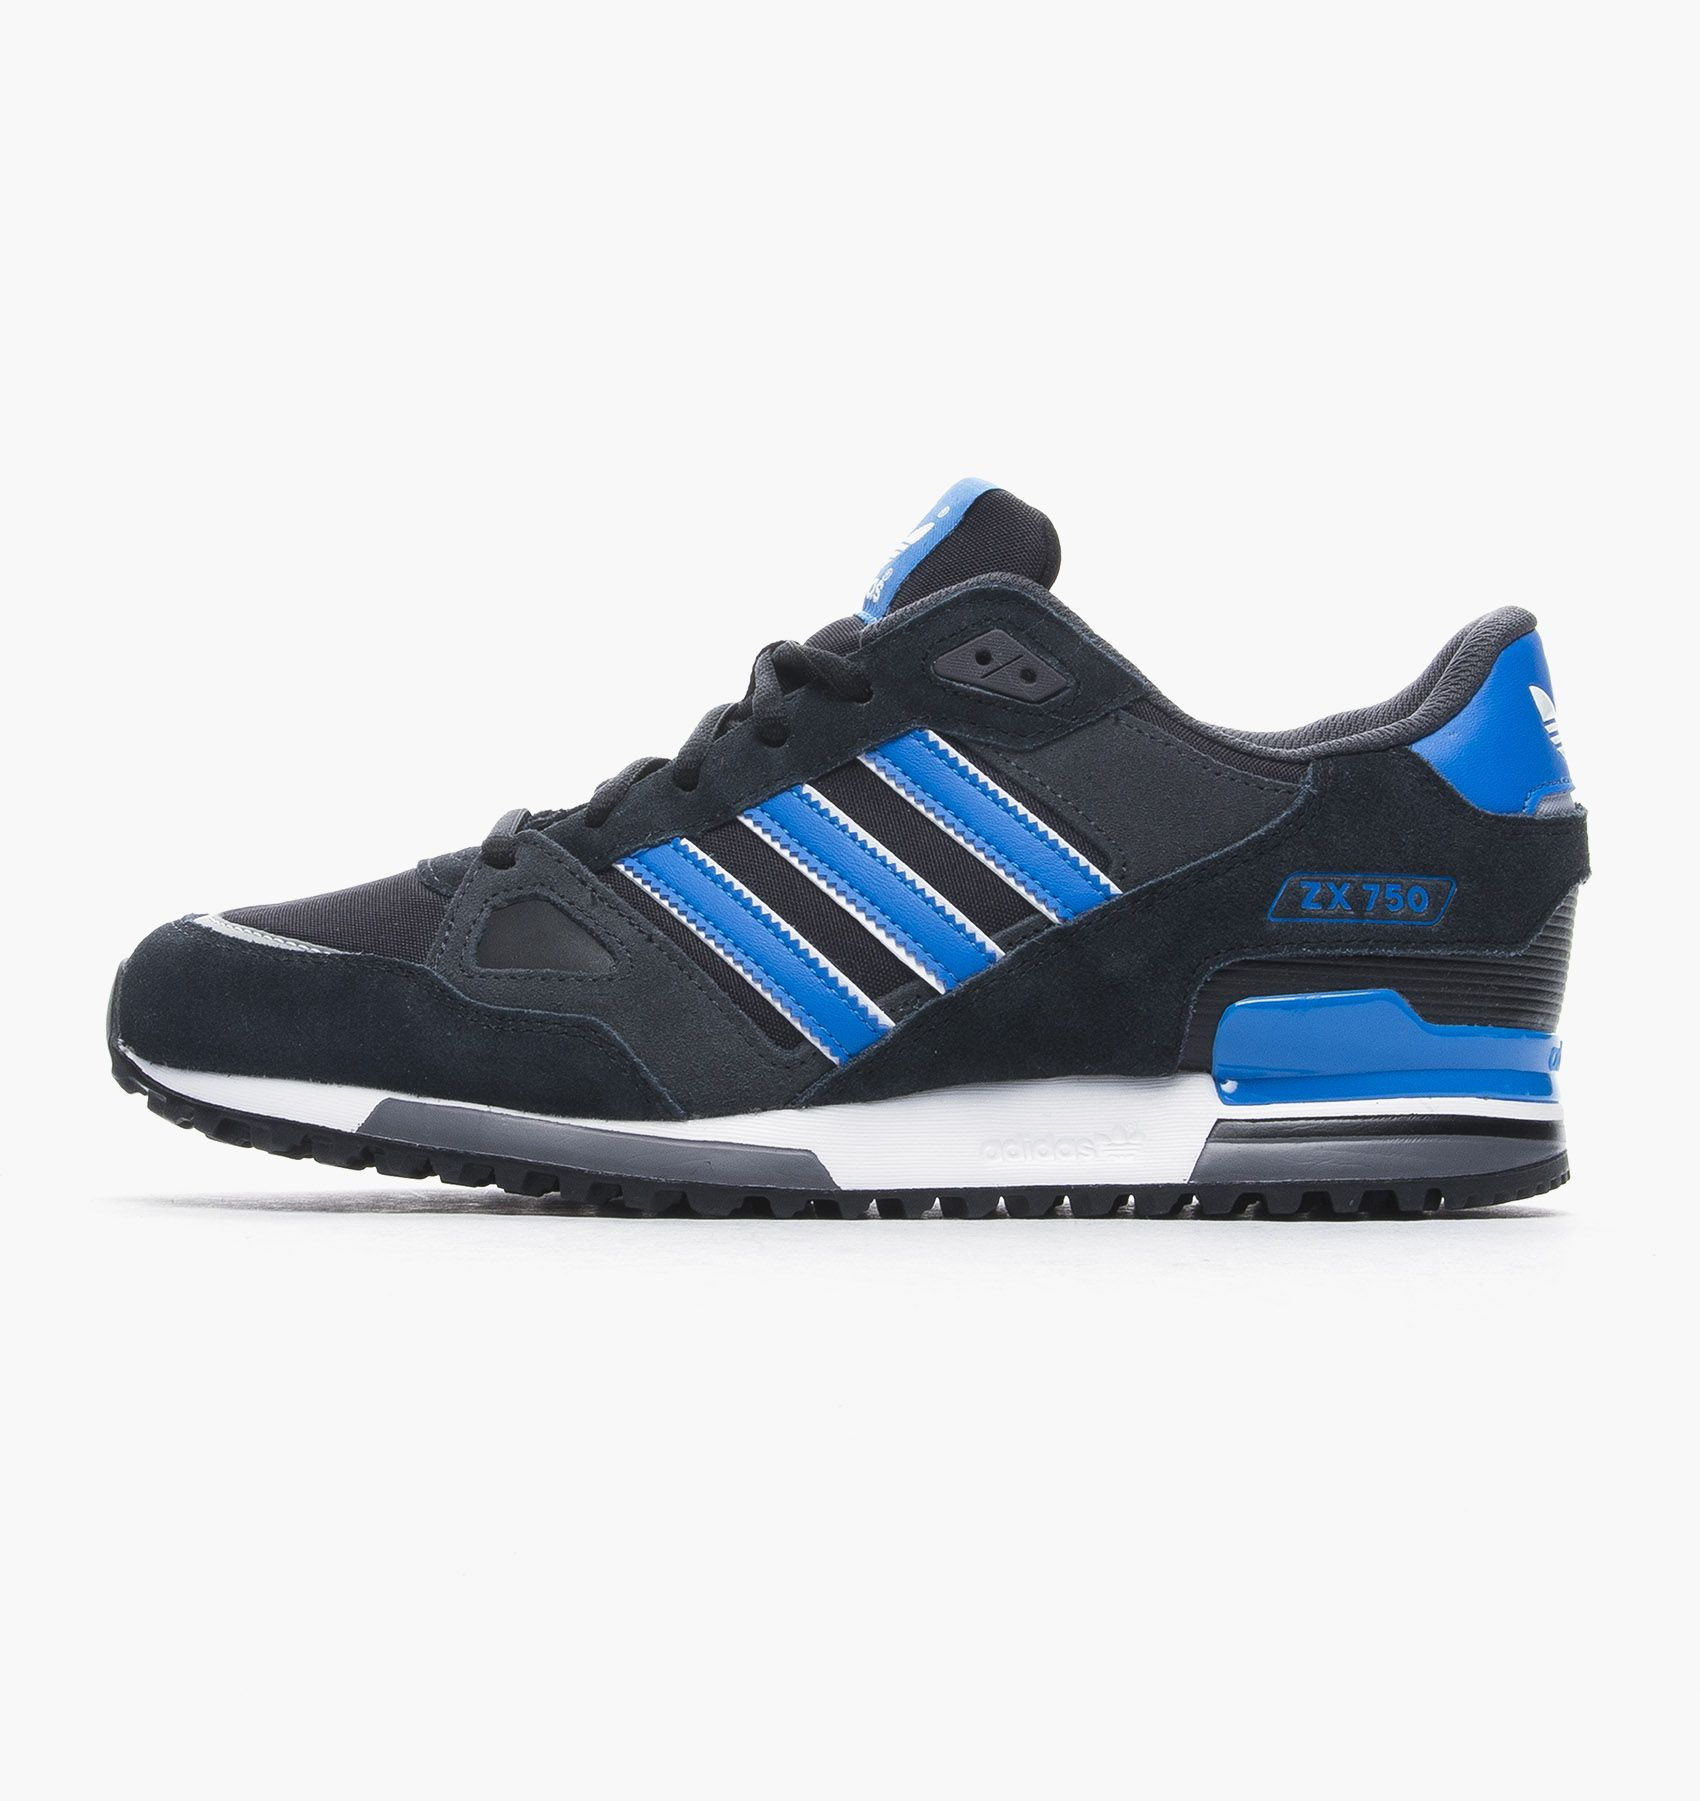 finest selection 23ab0 21878 adidas-originals-zx750-mens-running-trainer-shoes-black-7568-p.jpg